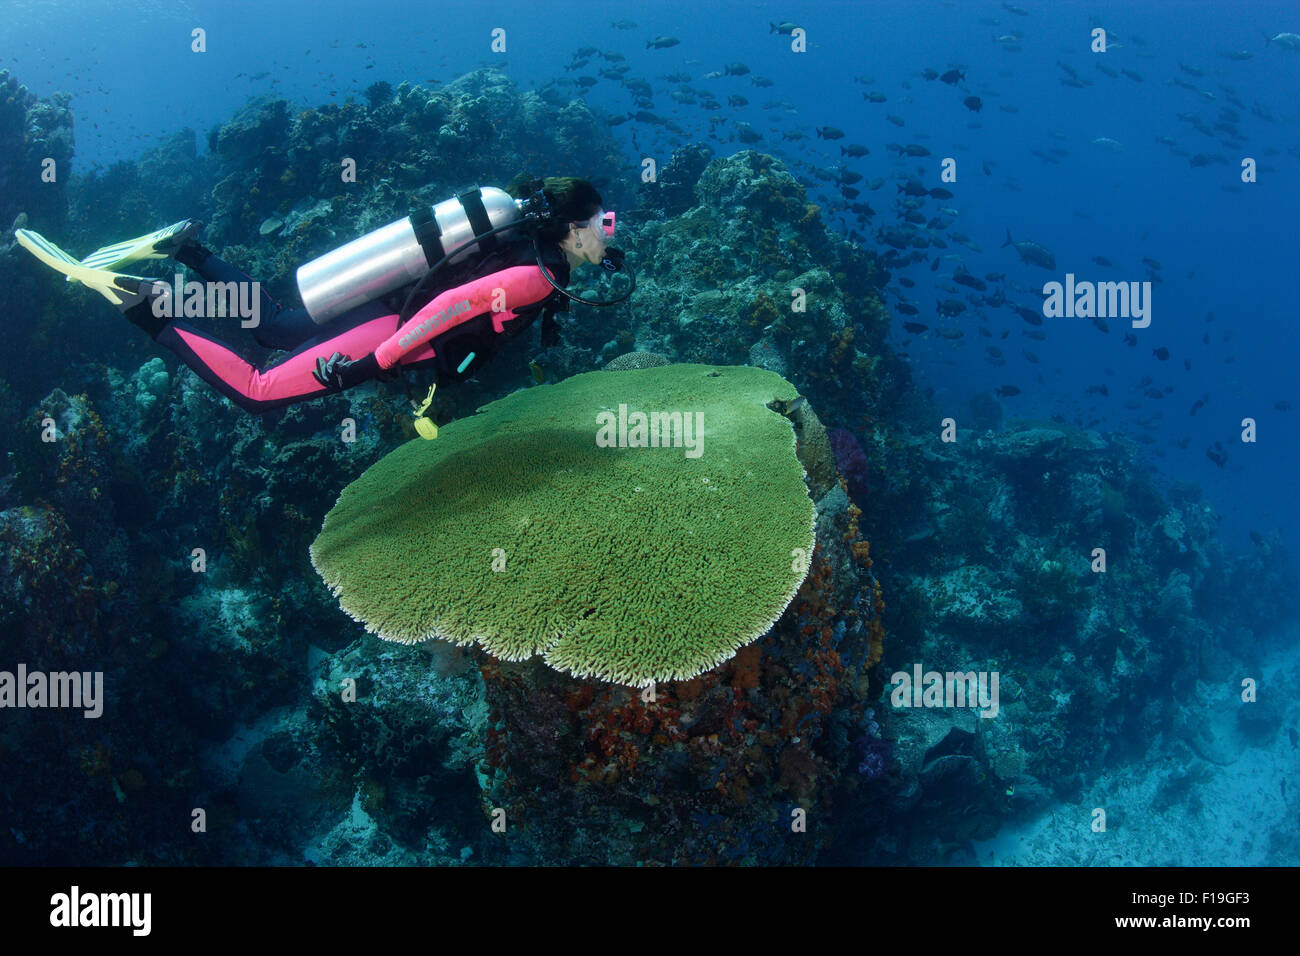 px0334-D. scuba diver (model released) glides over large table coral along reef edge. Indonesia, tropical Pacific - Stock Image